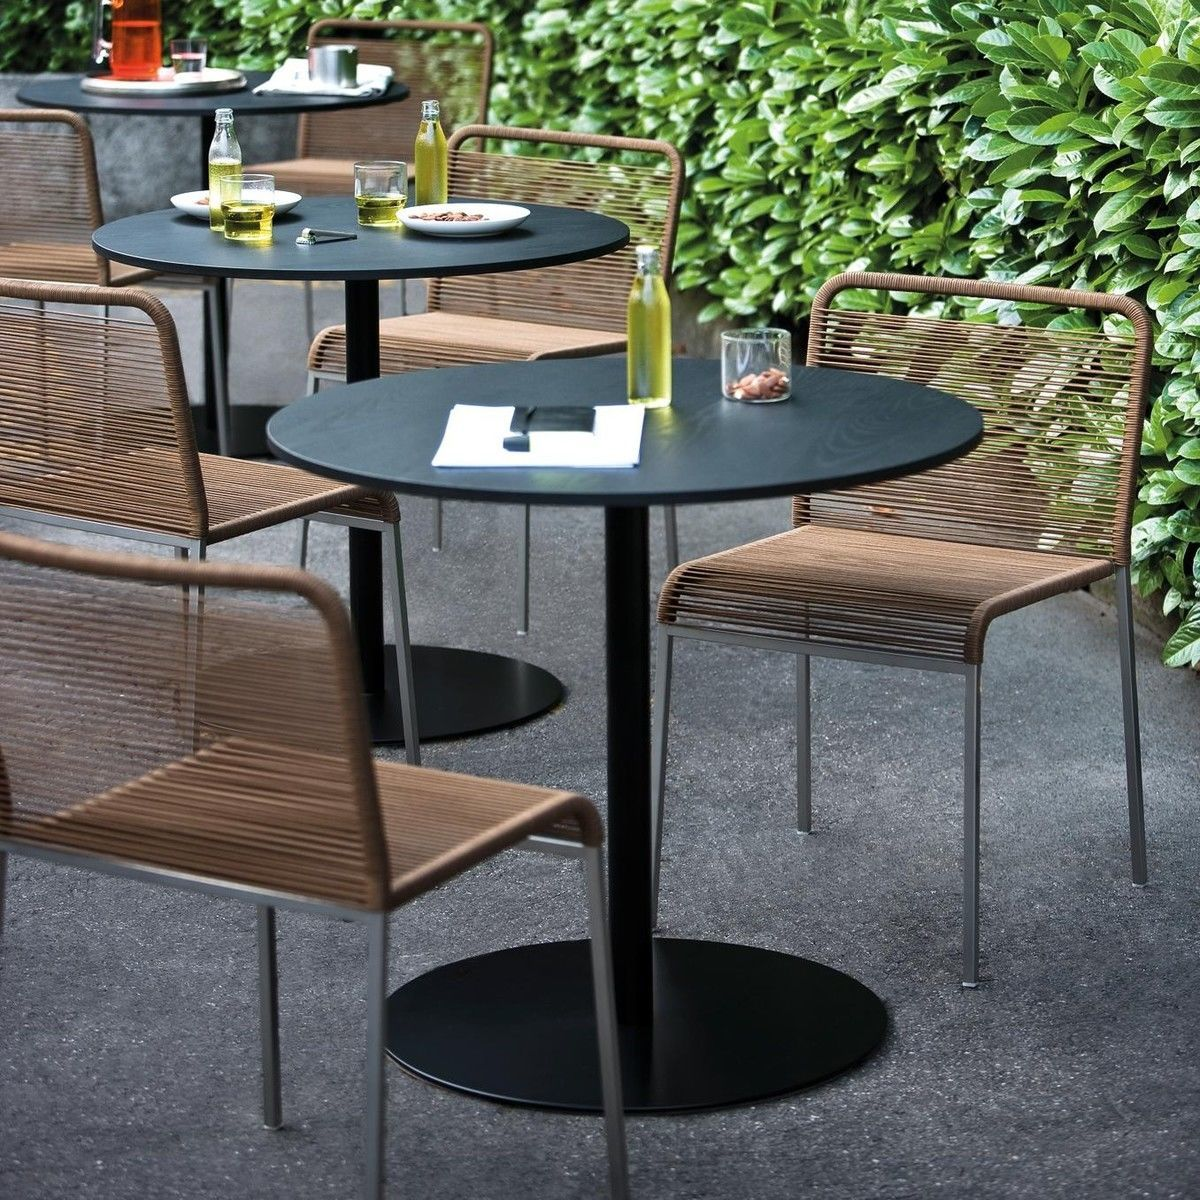 brio fix 72 bistro kaffeetisch gest schwarz la palma garten bistrotische gartenm bel. Black Bedroom Furniture Sets. Home Design Ideas